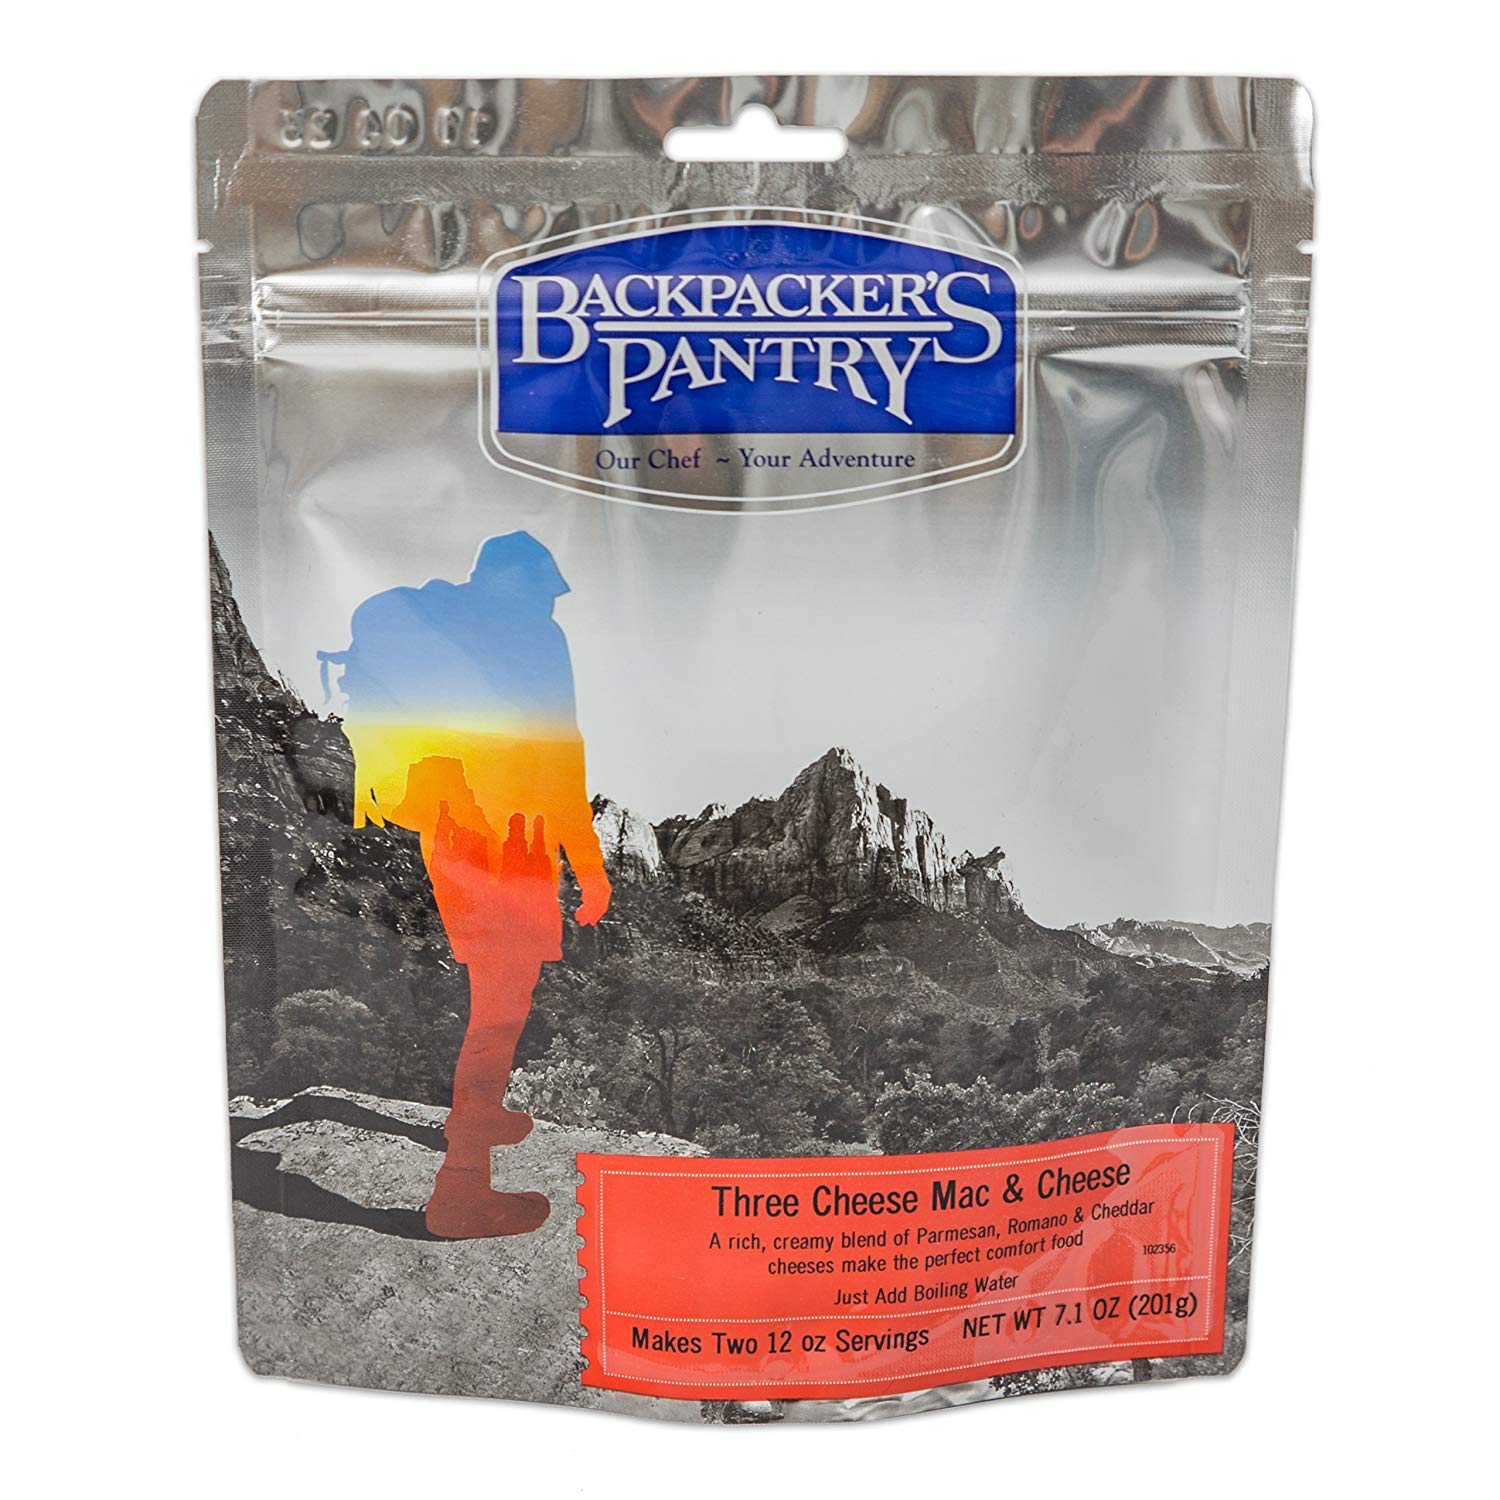 Backpackers Pantry - I'm not sure how much Backpackers Pantry I ate while hiking the PCT, but let me tell you...it was a lot and I never got tired of it. I'd save the Mac and Cheese option for when I had a long day and needed comfort food. Life always felt better after that meal.